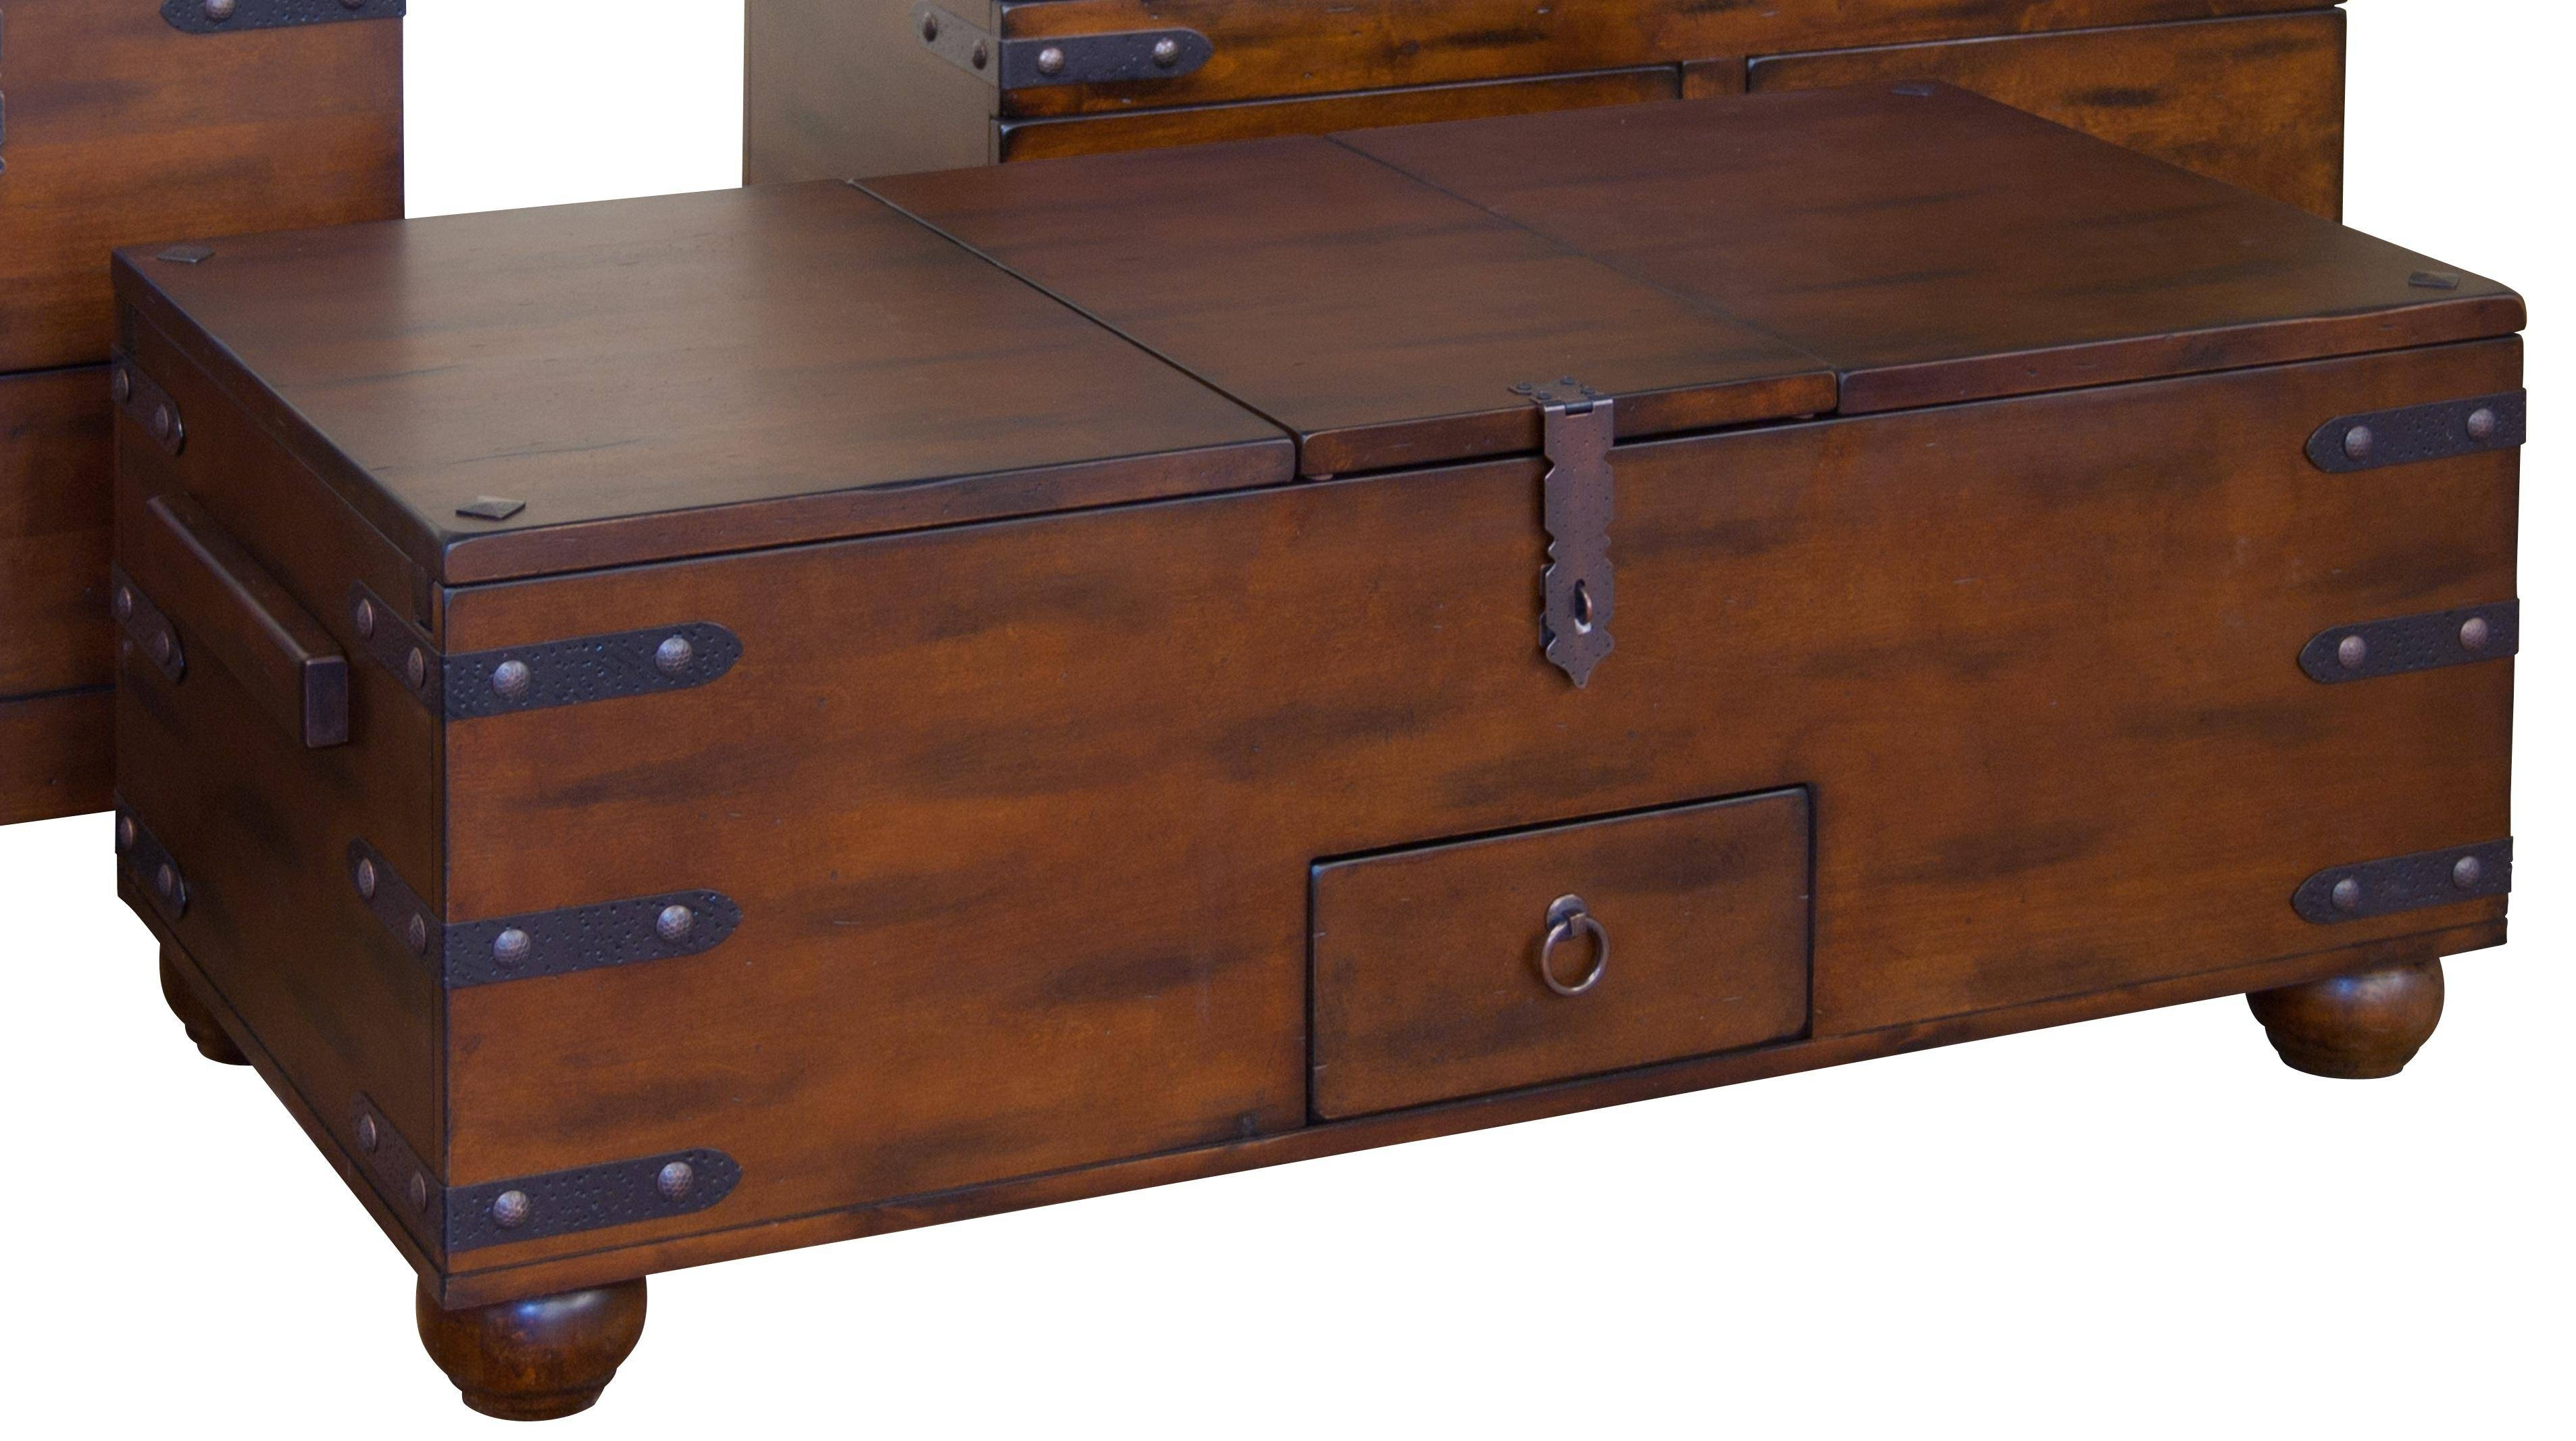 Wooden Trunks Coffee Tables Coffee Tables Decoration In Steamer Trunk Stainless Steel Coffee Tables